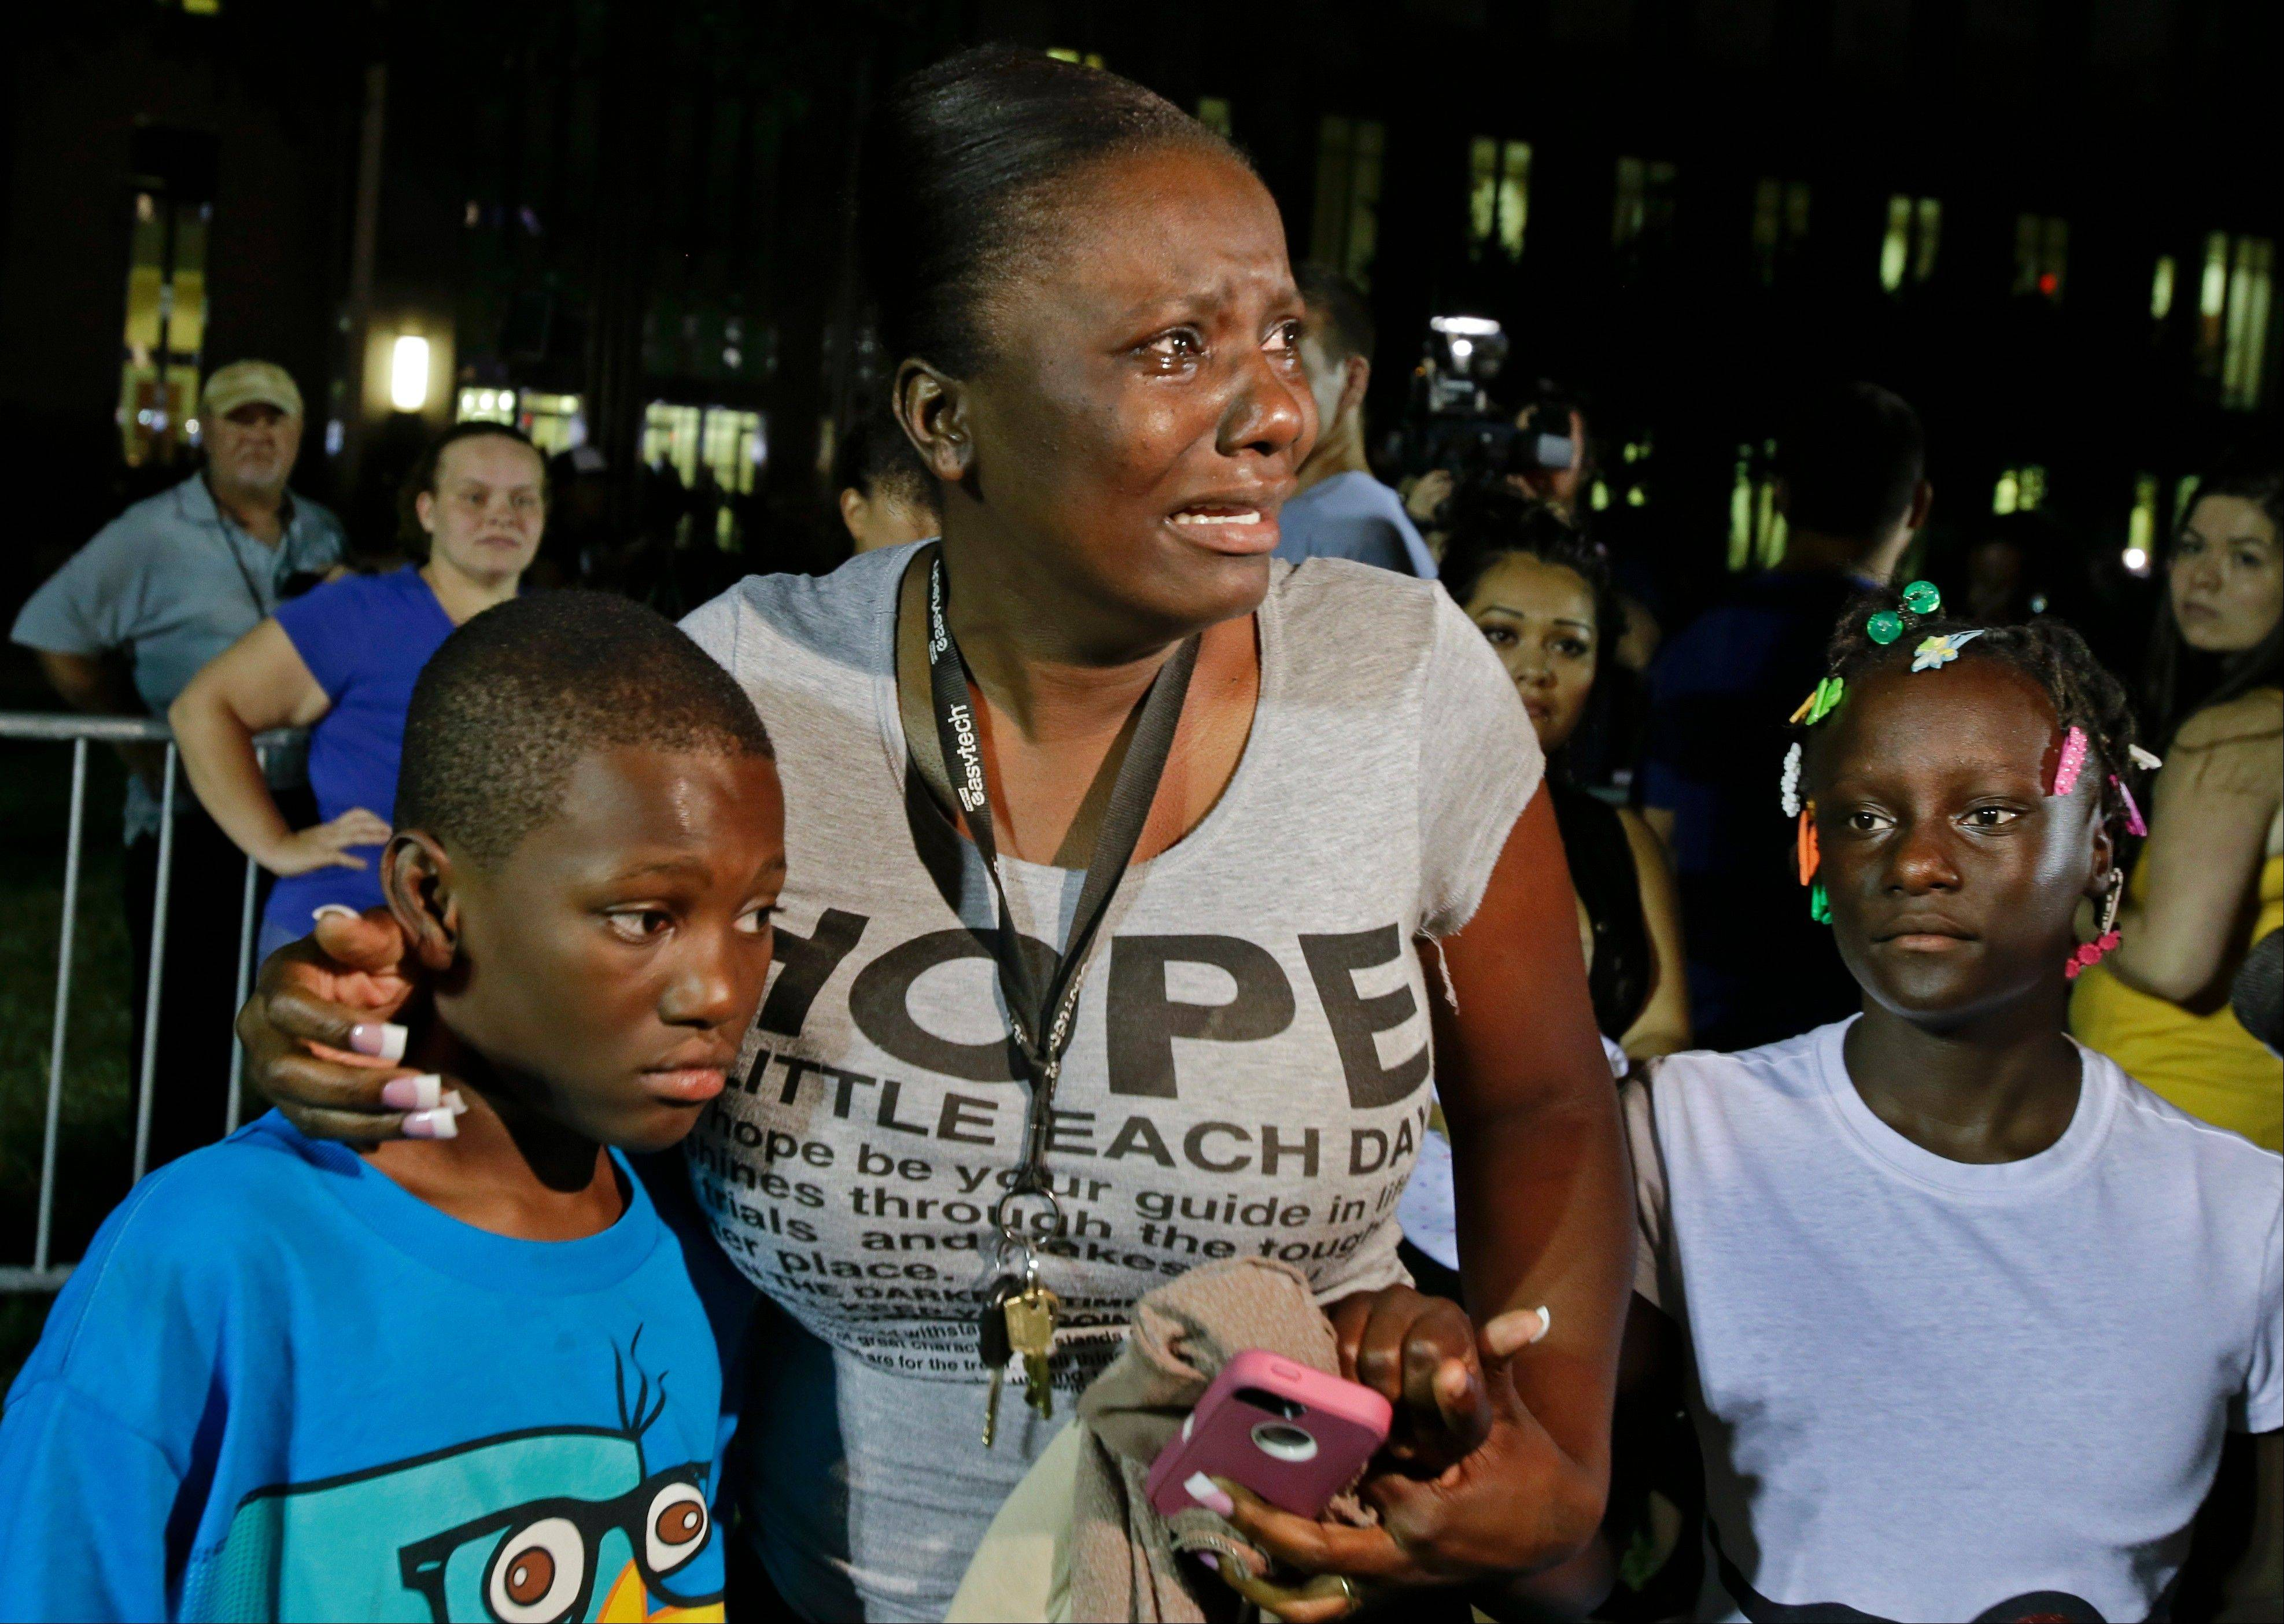 Darrsie Jackson, center, reacts after hearing the verdict of not guilty in the trial of George Zimmerman with her children Linzey Stafford, left, 10, and Shauntina Stafford, 11, at the Seminole County Courthouse, Saturday, July 13, 2013, in Sanford, Fla. Zimmerman had been charged with the 2012 shooting death of 17-year-old Trayvon Martin. Zimmerman, a neighborhood watch volunteer, was cleared of all charges in the shooting of Martin, the unarmed black teenager whose killing unleashed furious debate across the U.S. over racial profiling, self-defense and equal justice.